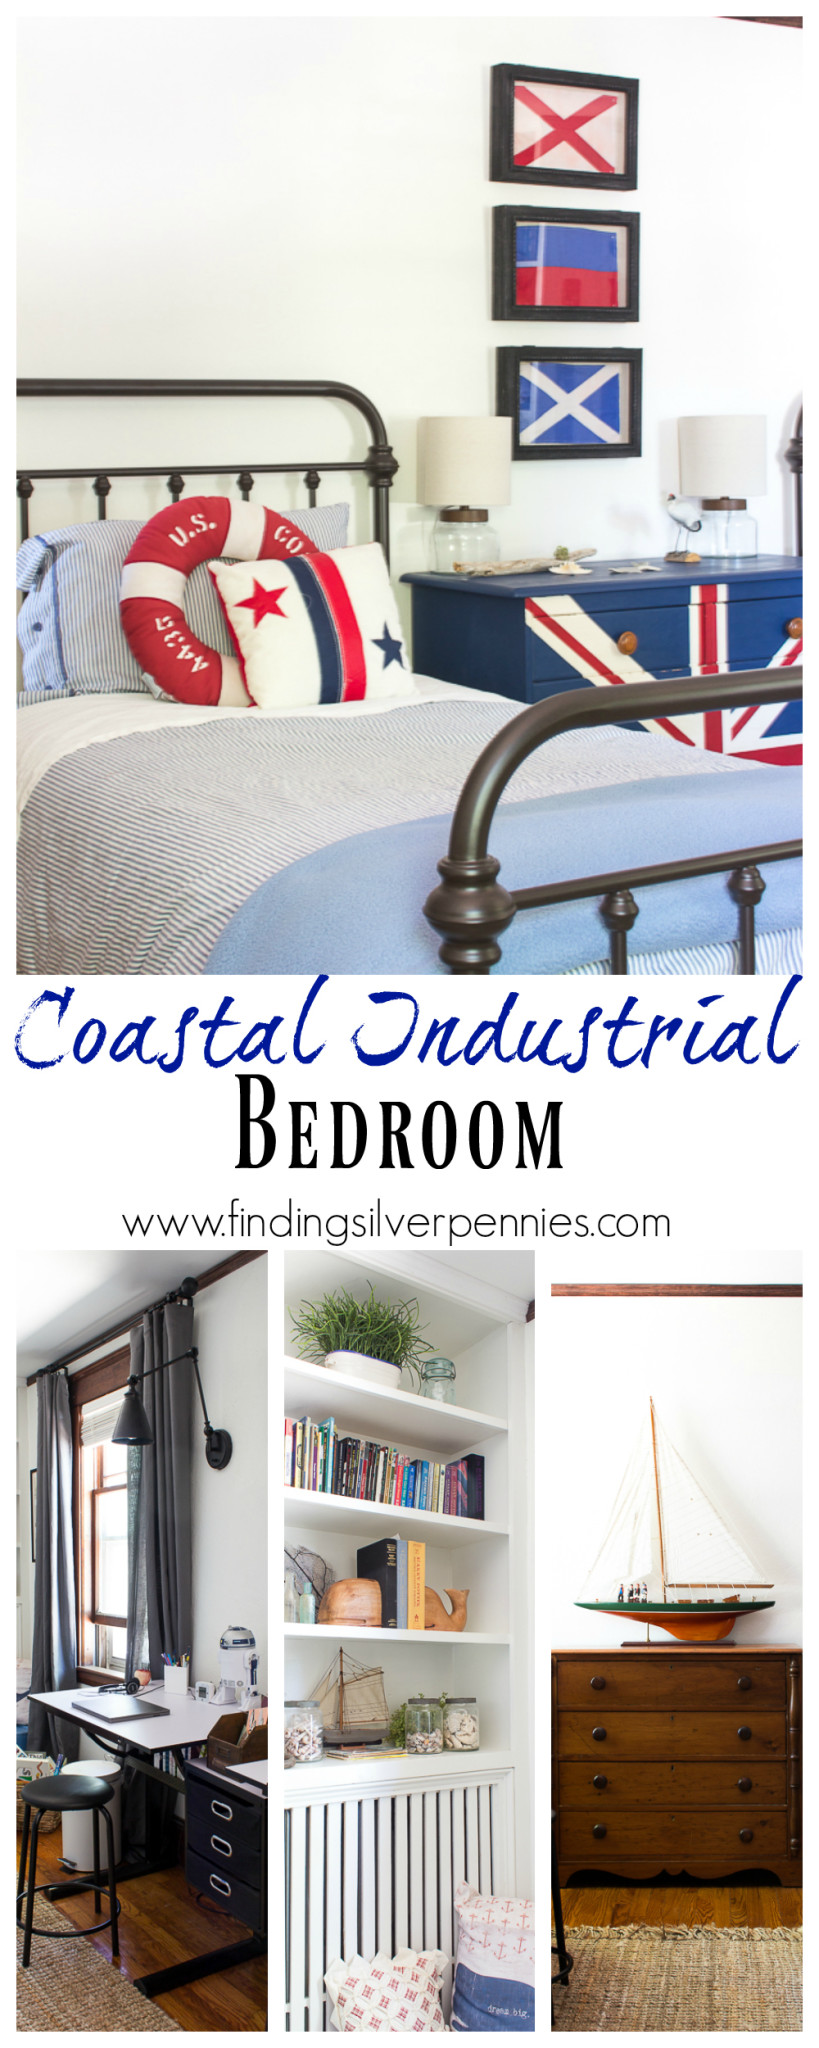 Coastal Industrial Bedroom by Finding Silver Pennies